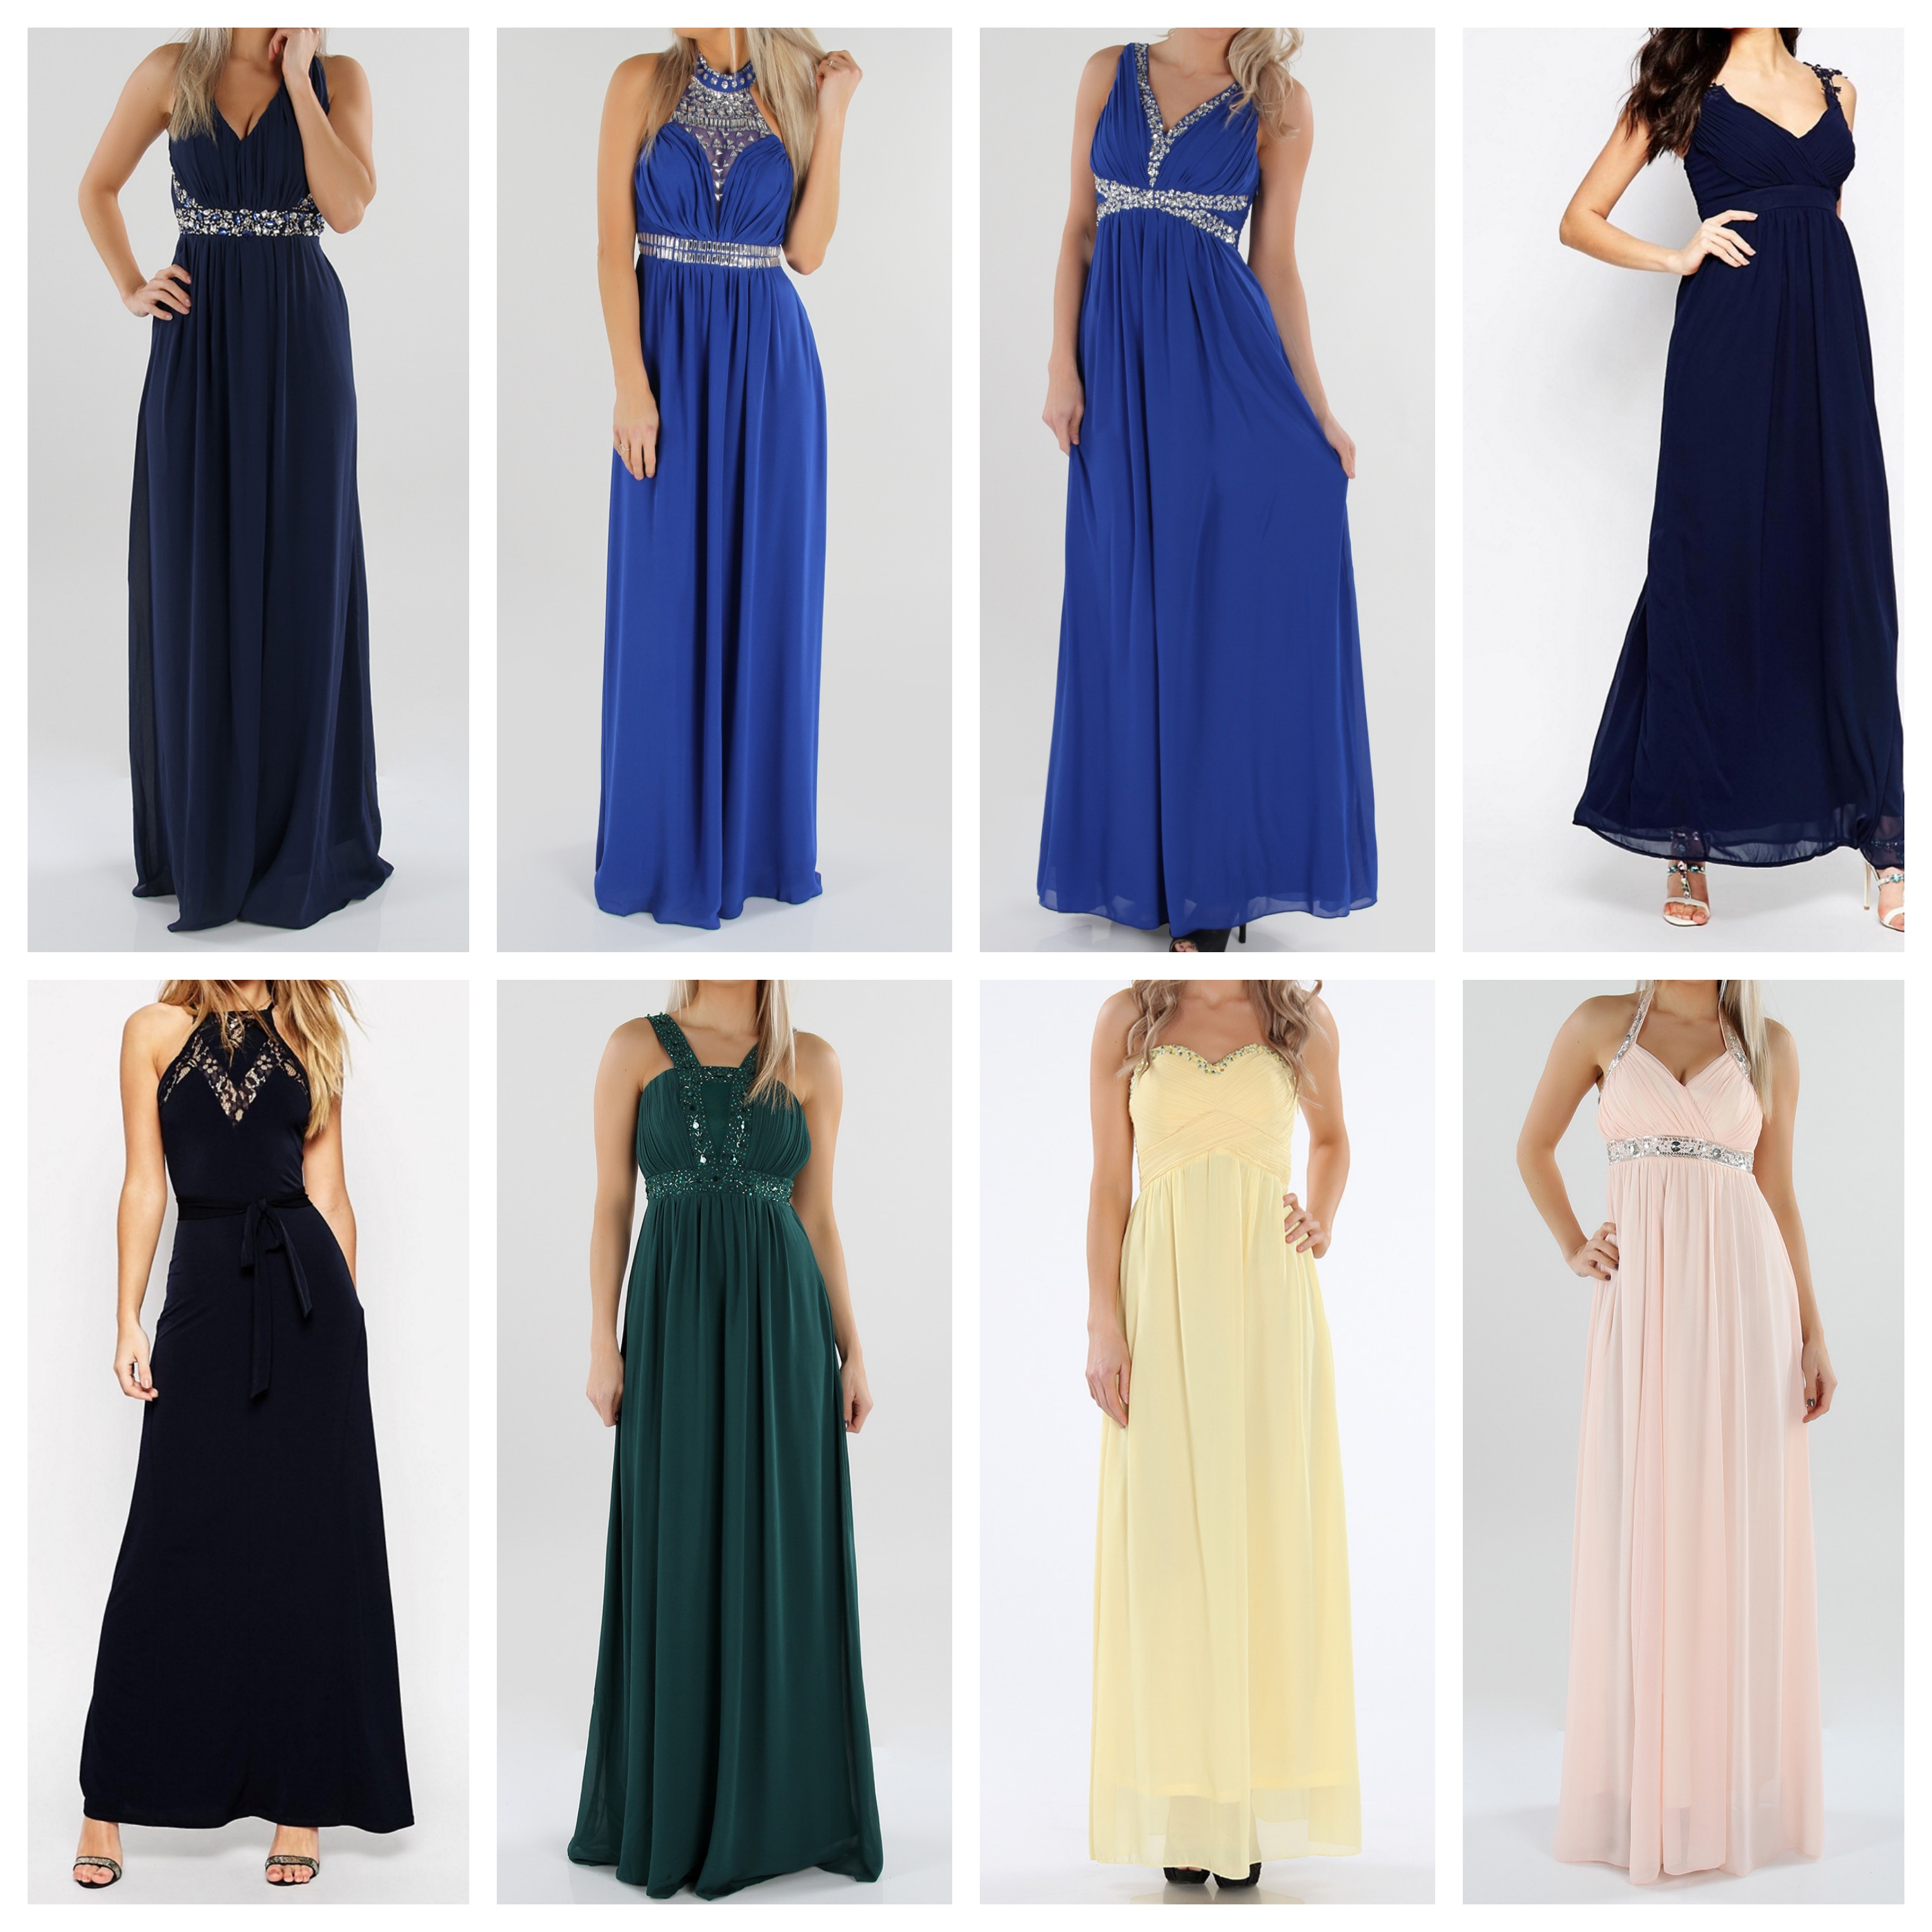 d69eea3d 01 // Isabella gallakjole – 699,- 02 // Zindy gallakjole – 325,- 03 //  Carmen gallakjole – 649,- 04 // Club L wrap front maxi dress – 261,- 05 //  Asos maxi ...